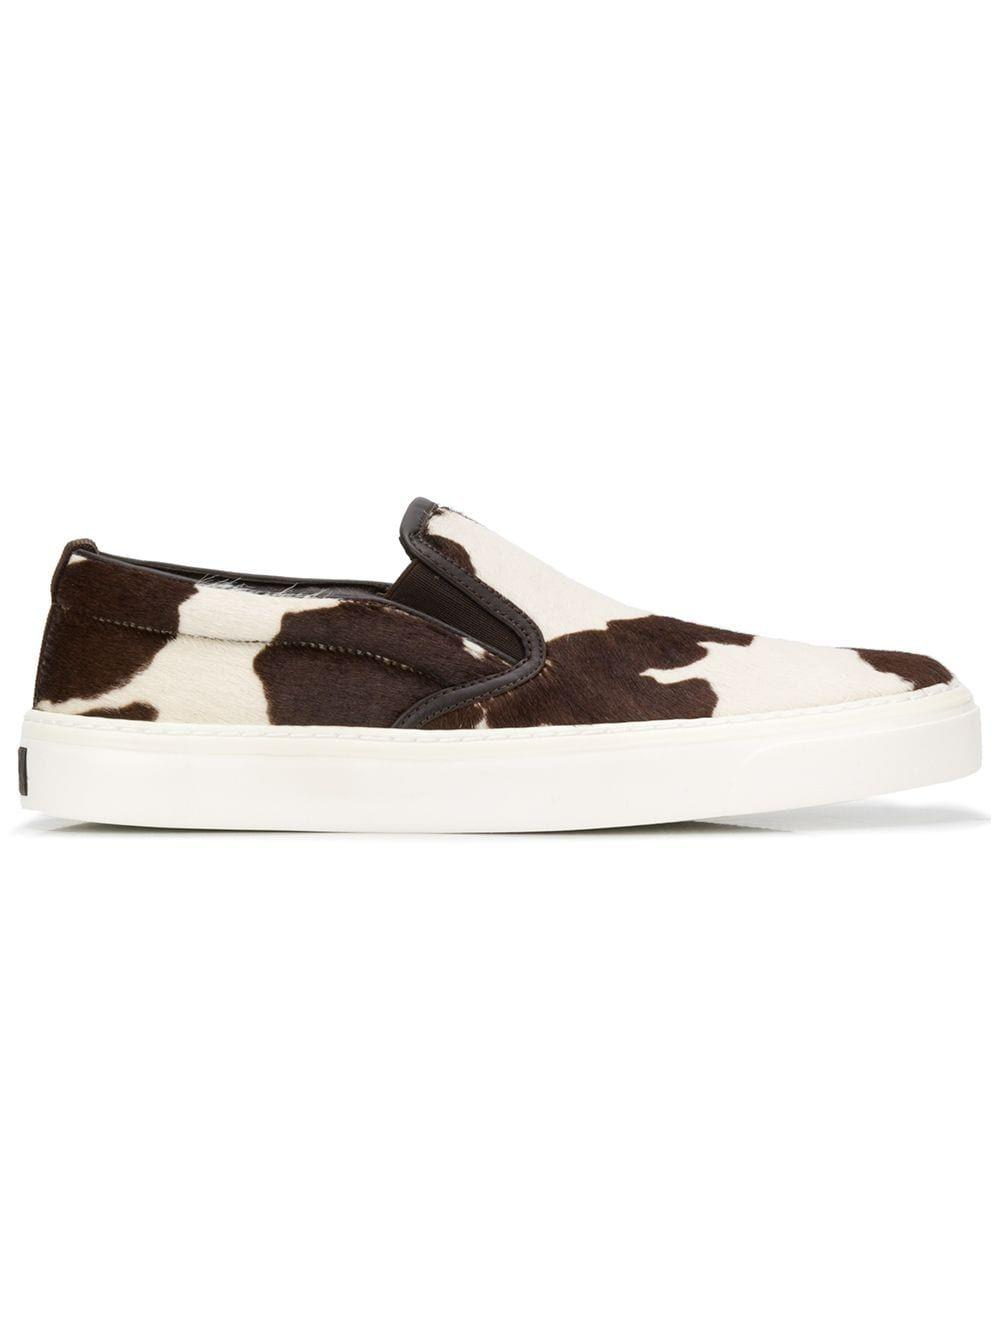 """<p><strong>Gucci</strong></p><p>farfetch.com</p><p><strong>$690.00</strong></p><p><a href=""""https://go.redirectingat.com?id=74968X1596630&url=https%3A%2F%2Fwww.farfetch.com%2Fshopping%2Fwomen%2Fgucci-cowhide-slip-on-sneakers-item-13611042.aspx&sref=https%3A%2F%2Fwww.marieclaire.com%2Ffashion%2Fg30859606%2Fslip-on-sneakers%2F"""" rel=""""nofollow noopener"""" target=""""_blank"""" data-ylk=""""slk:SHOP IT"""" class=""""link rapid-noclick-resp"""">SHOP IT</a></p><p>Tap into your animalistic side fashion wise by sporting these cow print slip-on sneakers. The elastic gives the shoe a little flexibility as you slide your feet into it while the white rubber sole makes this sneaker feel clean and streamlined. </p>"""